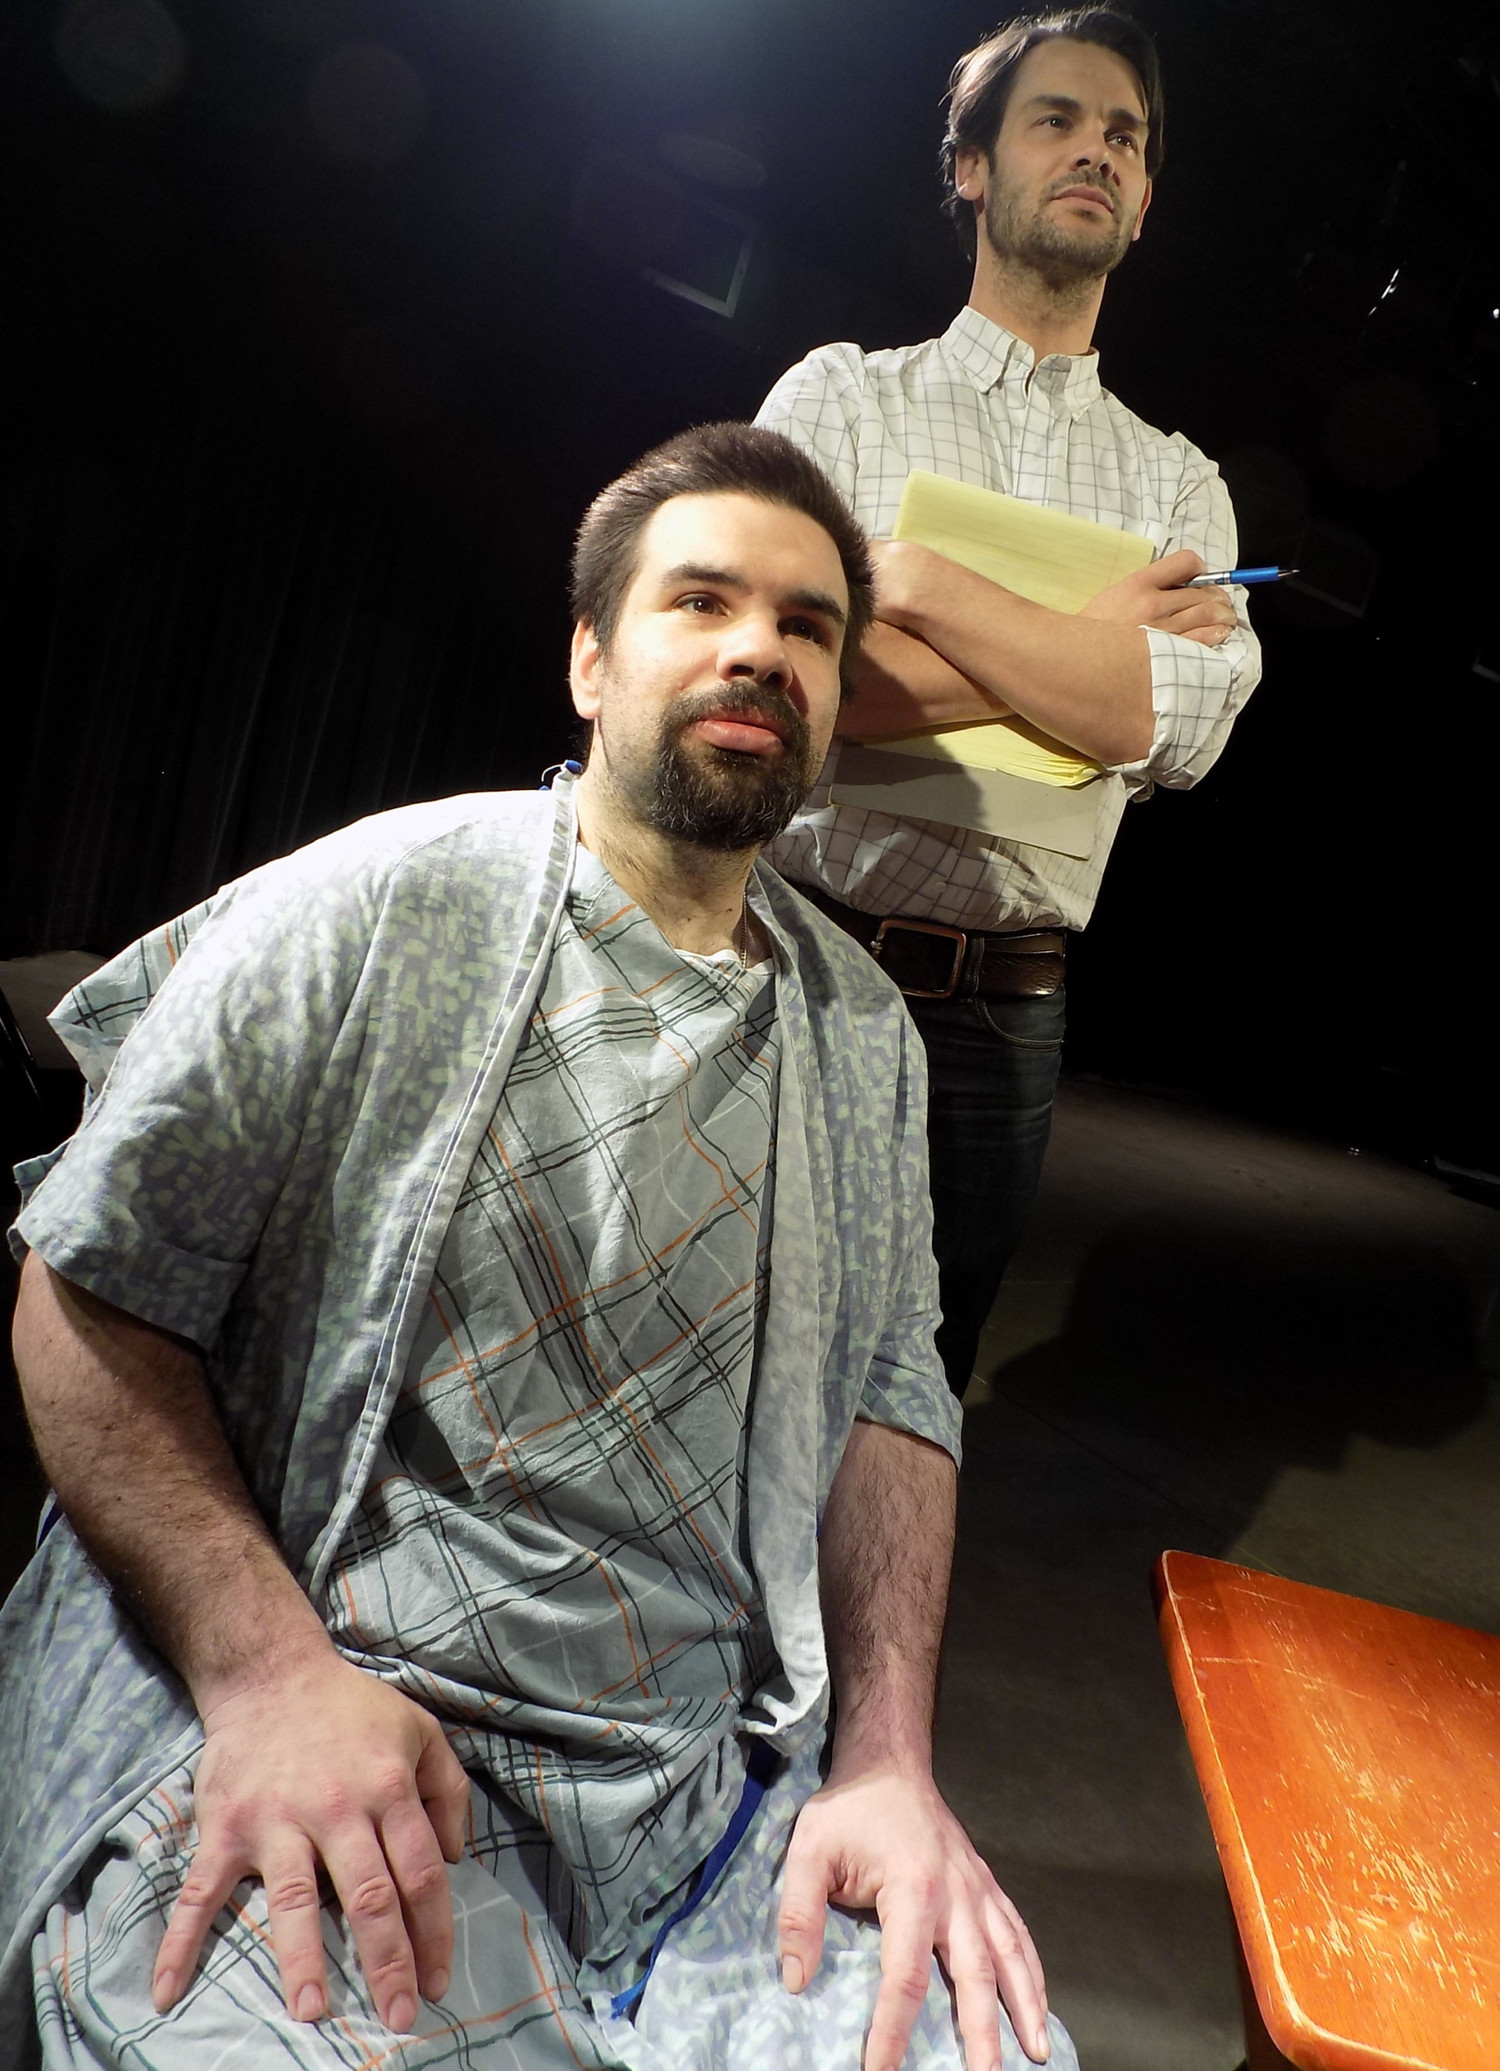 BWW Review: IDENTITY at El Barrio Artspace - Fascinating Tale of Growing Up Disabled and Gay